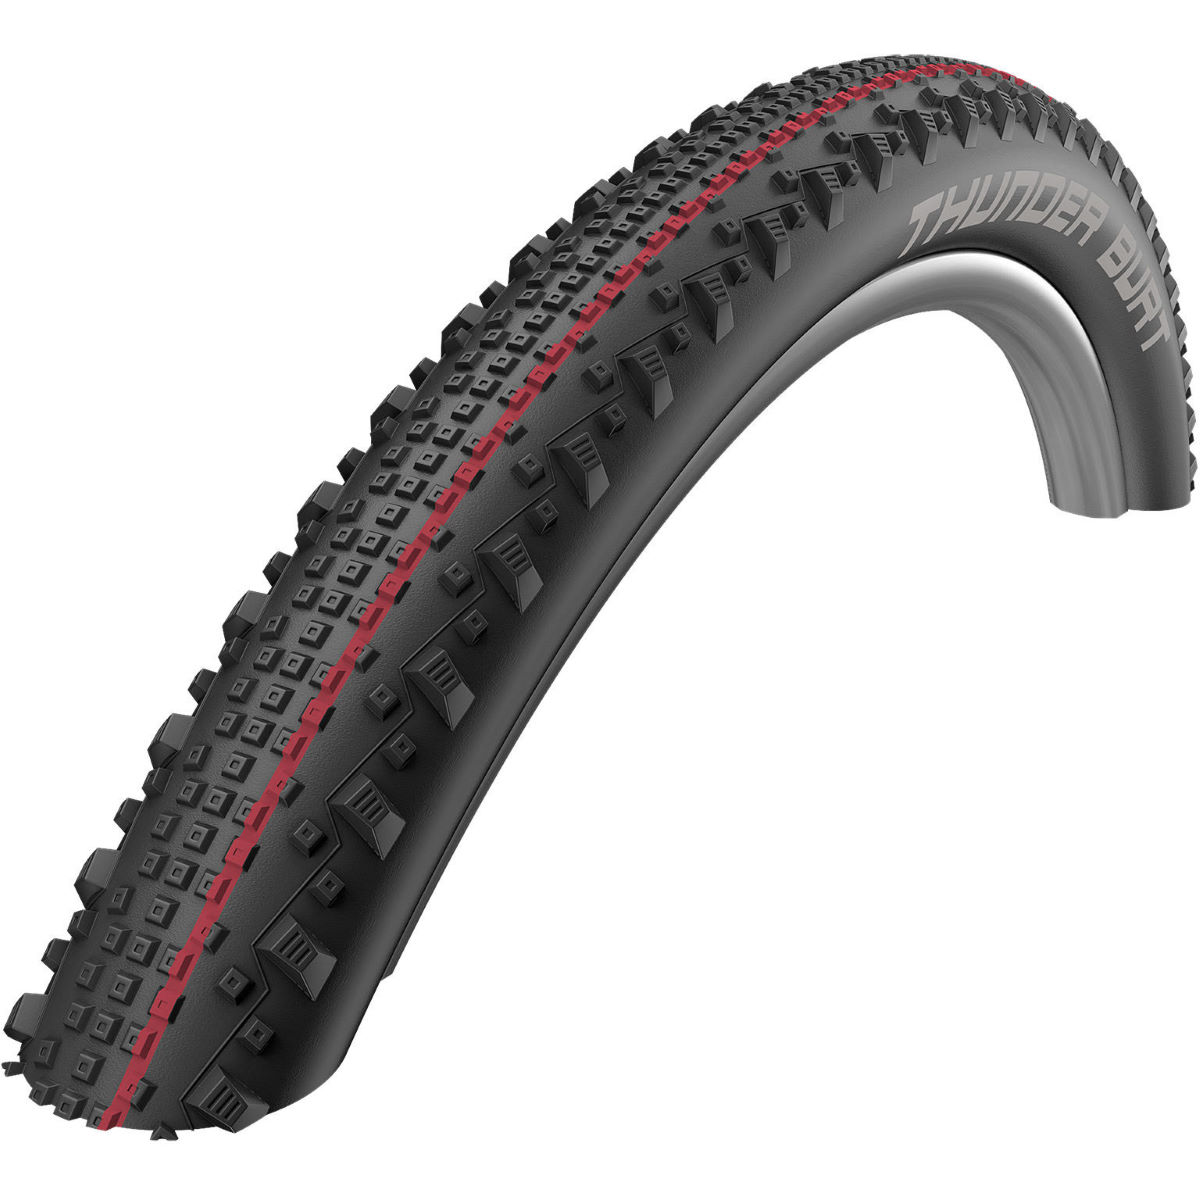 Pneu VTT Schwalbe Thunder Burt Addix SnakeSkin (souple) - Black - Red